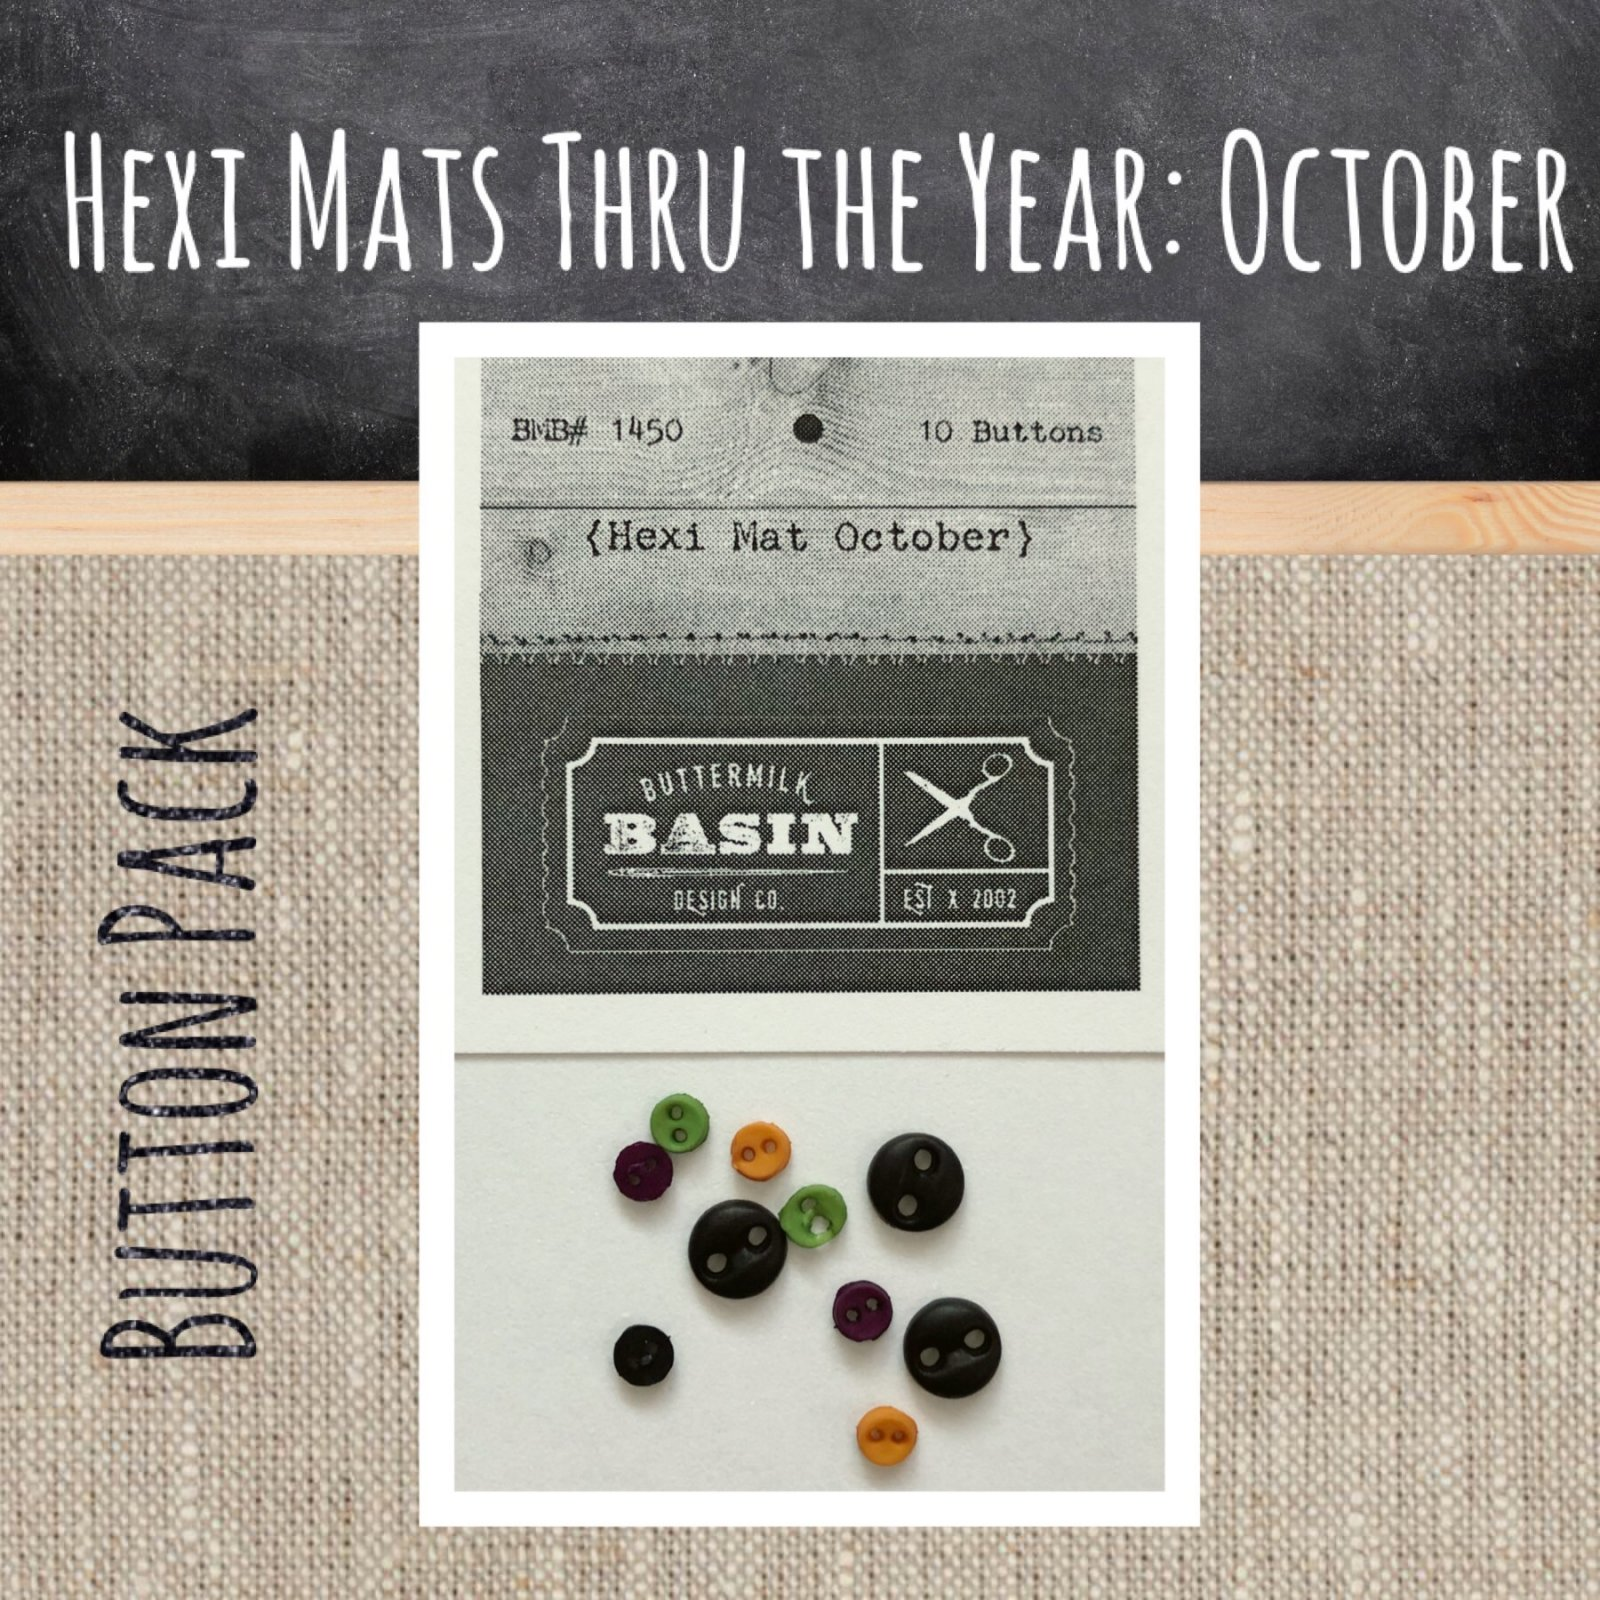 Hexi Mats thru the Year * October BUTTON pack